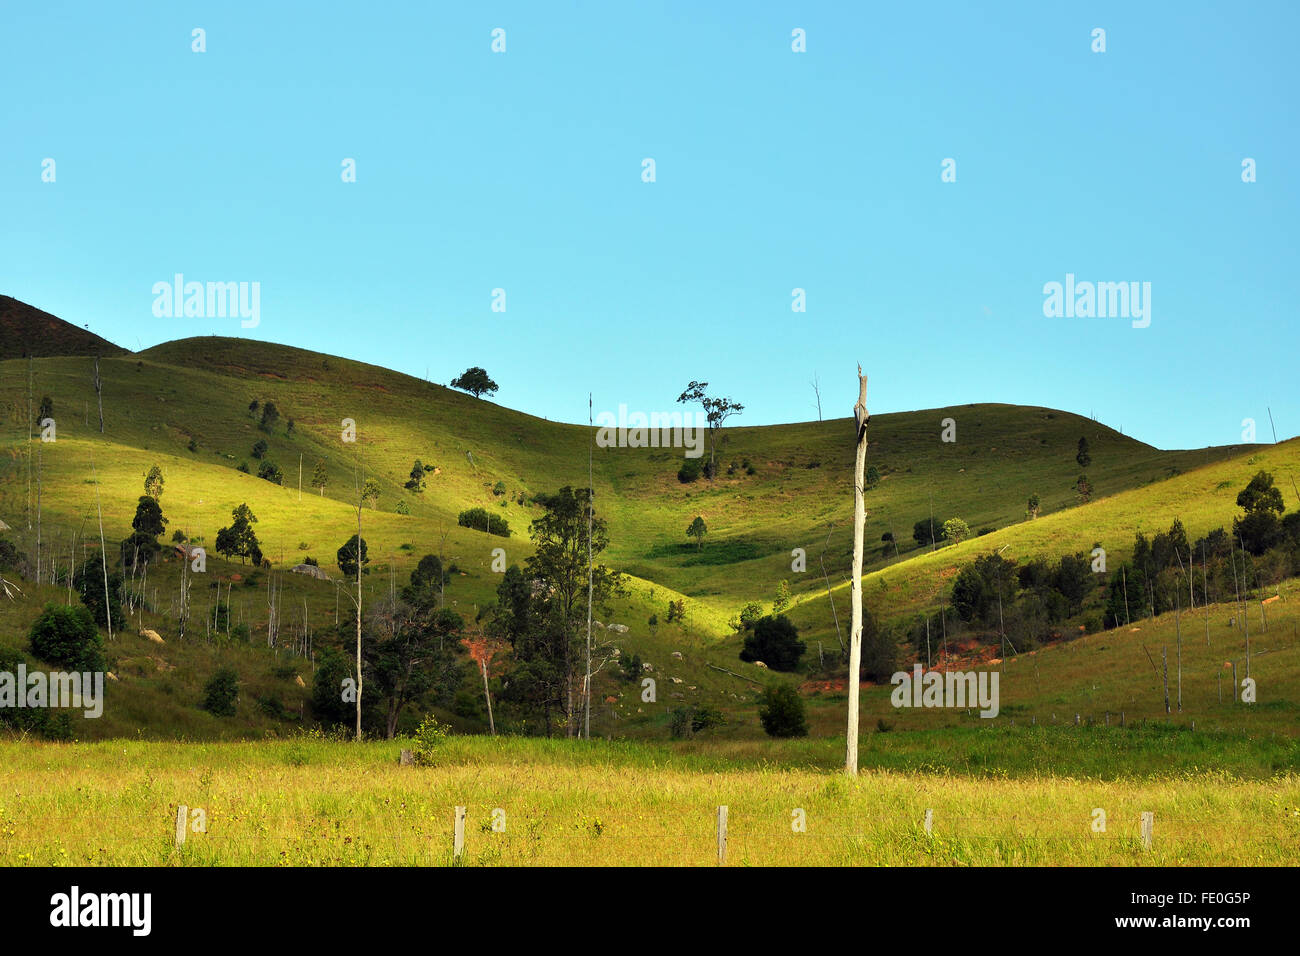 Rolling hill of Mt. Barney National Park under blue sky - Stock Image